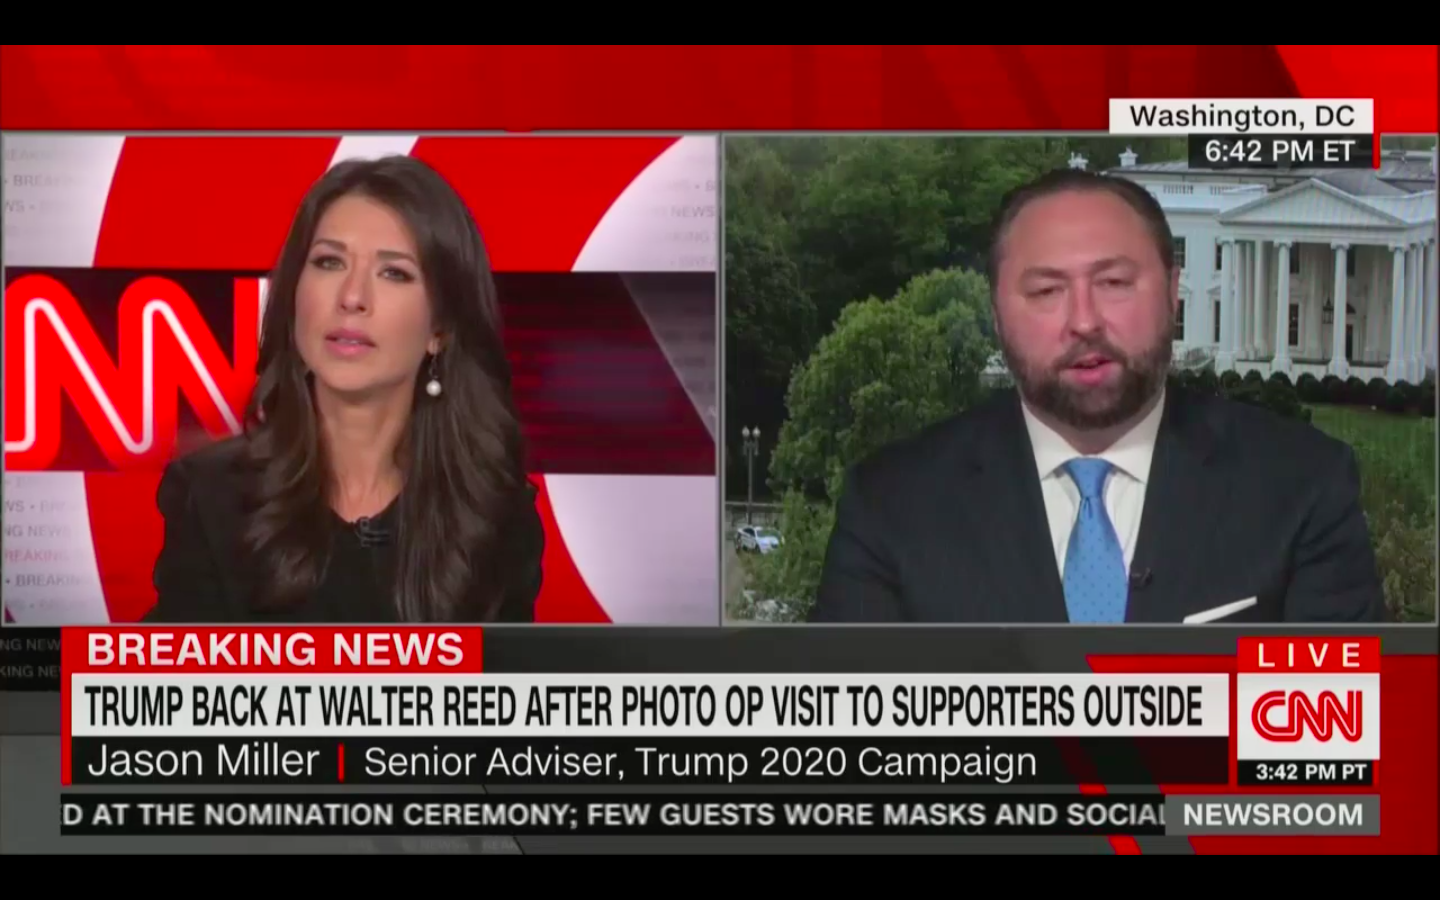 Ana Cabrera Confronts Jason Miller On Trump's SUV Photo Op and Plans for Future Rallies: 'How Is This Safe?'